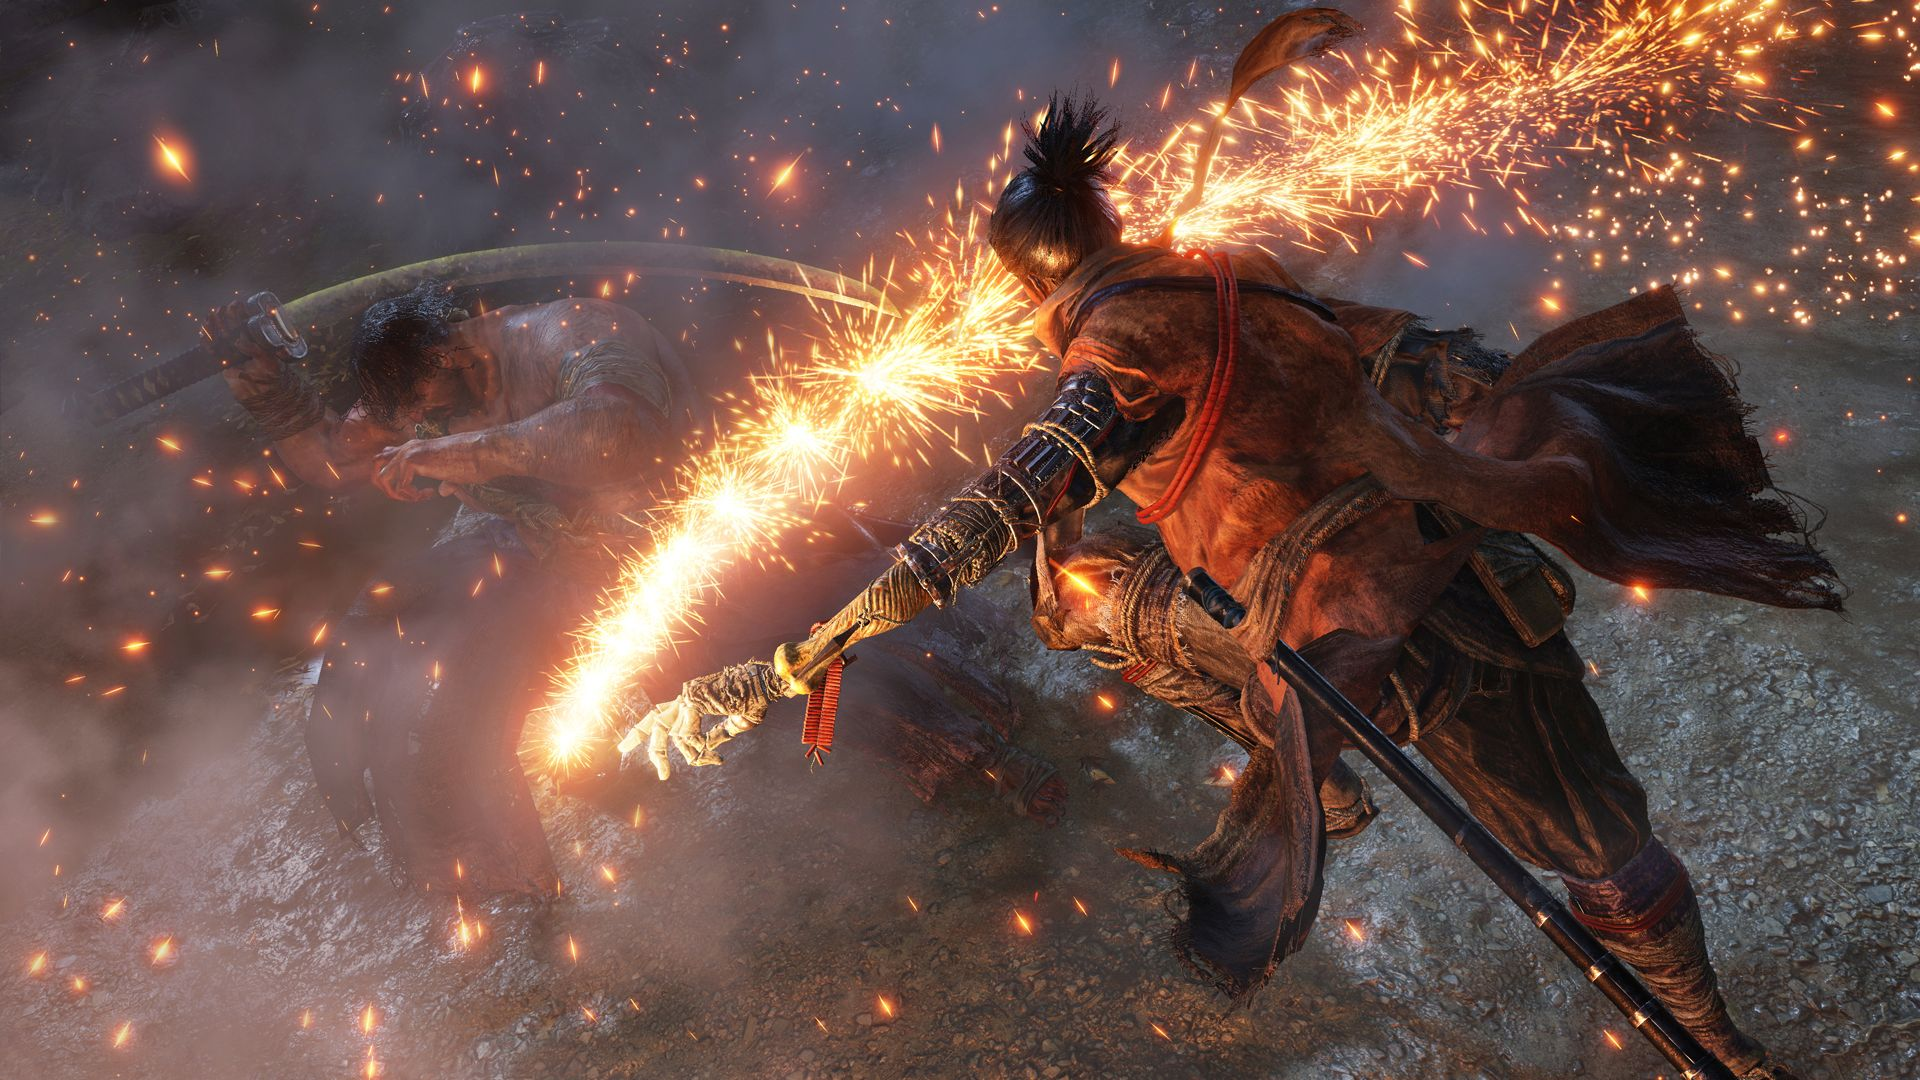 Sekiro Shadows Die Twice By FromSoftware Gets First